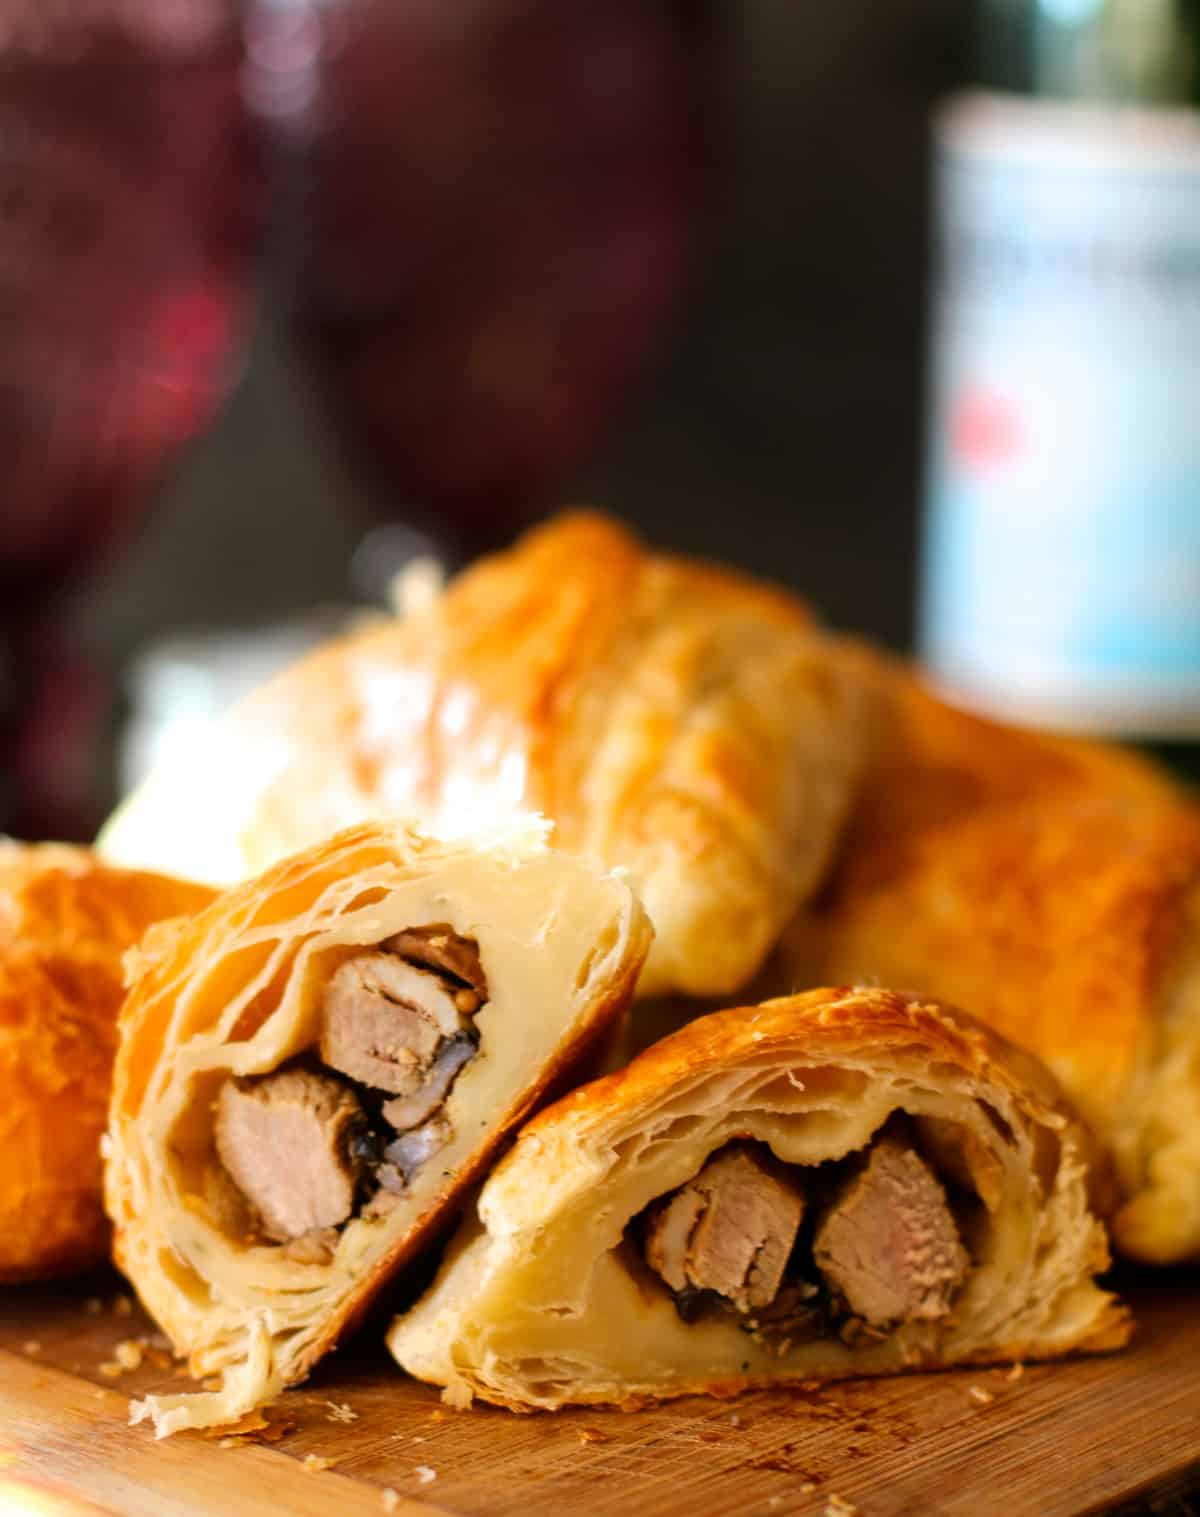 Lamb and mushroom puff pastry triangles with rosemary garlic dipping sauce